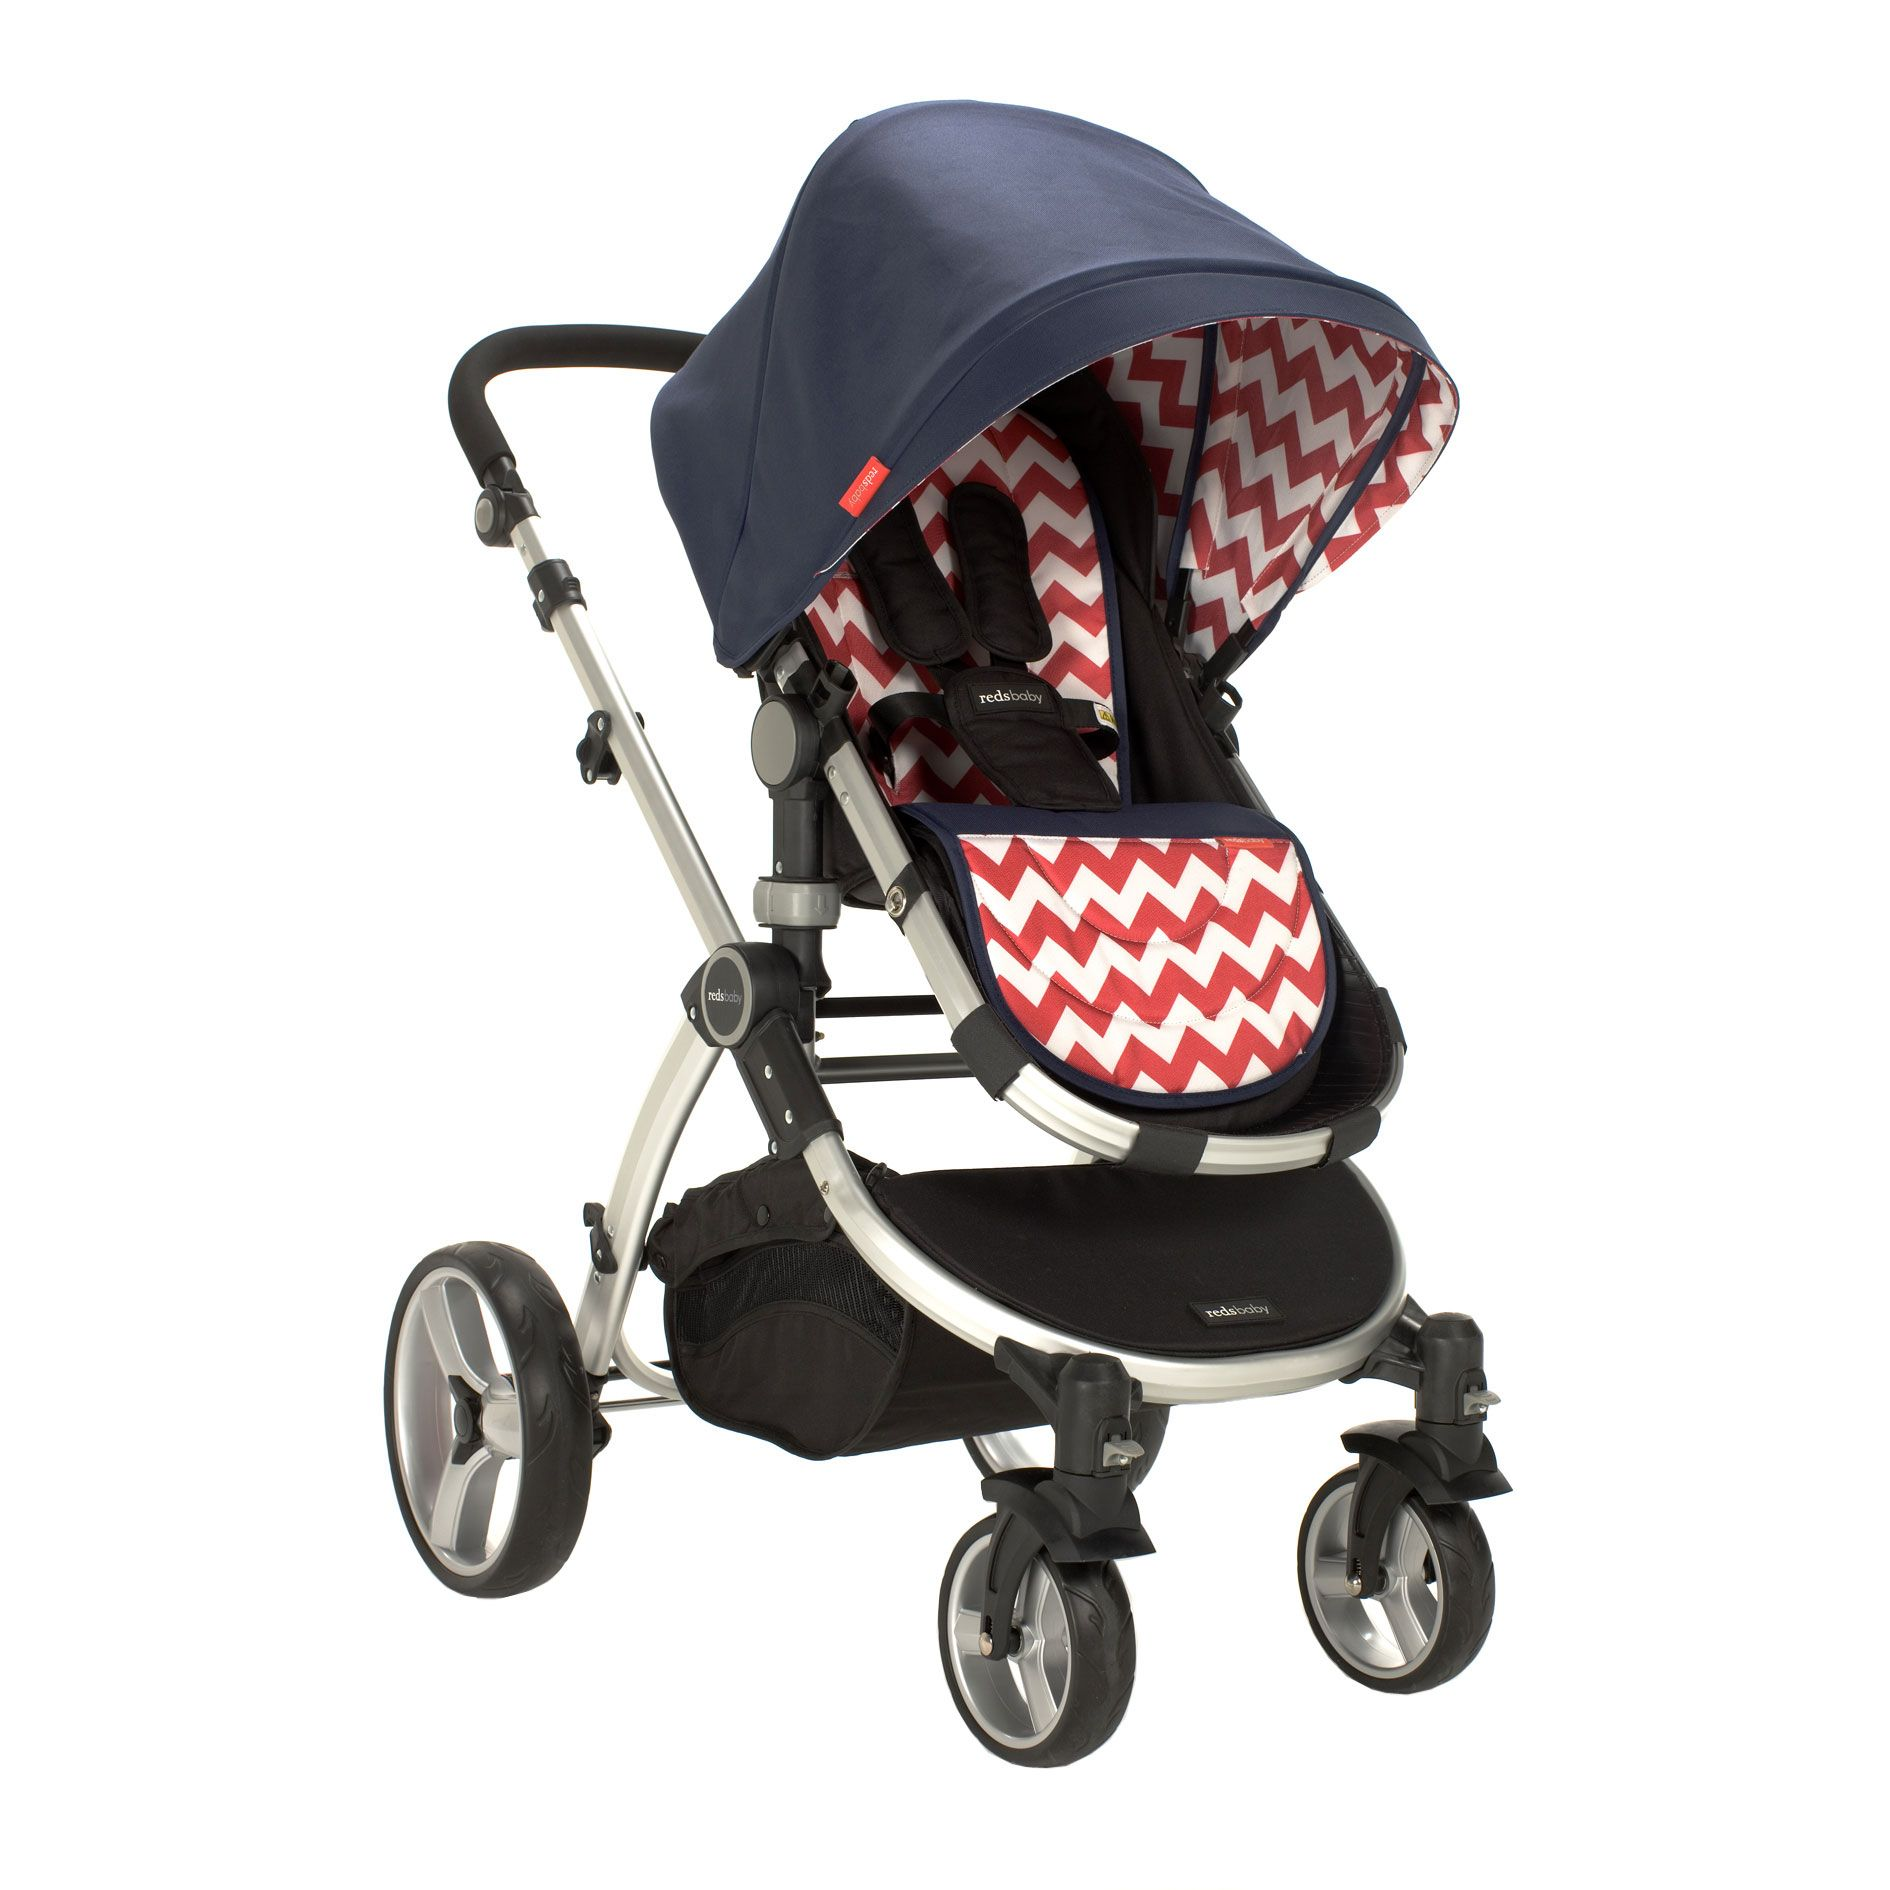 redsbaby bounce  the utlimate allinone stroller pram www  - redsbaby bounce  the utlimate allinone stroller pram wwwredsbaby